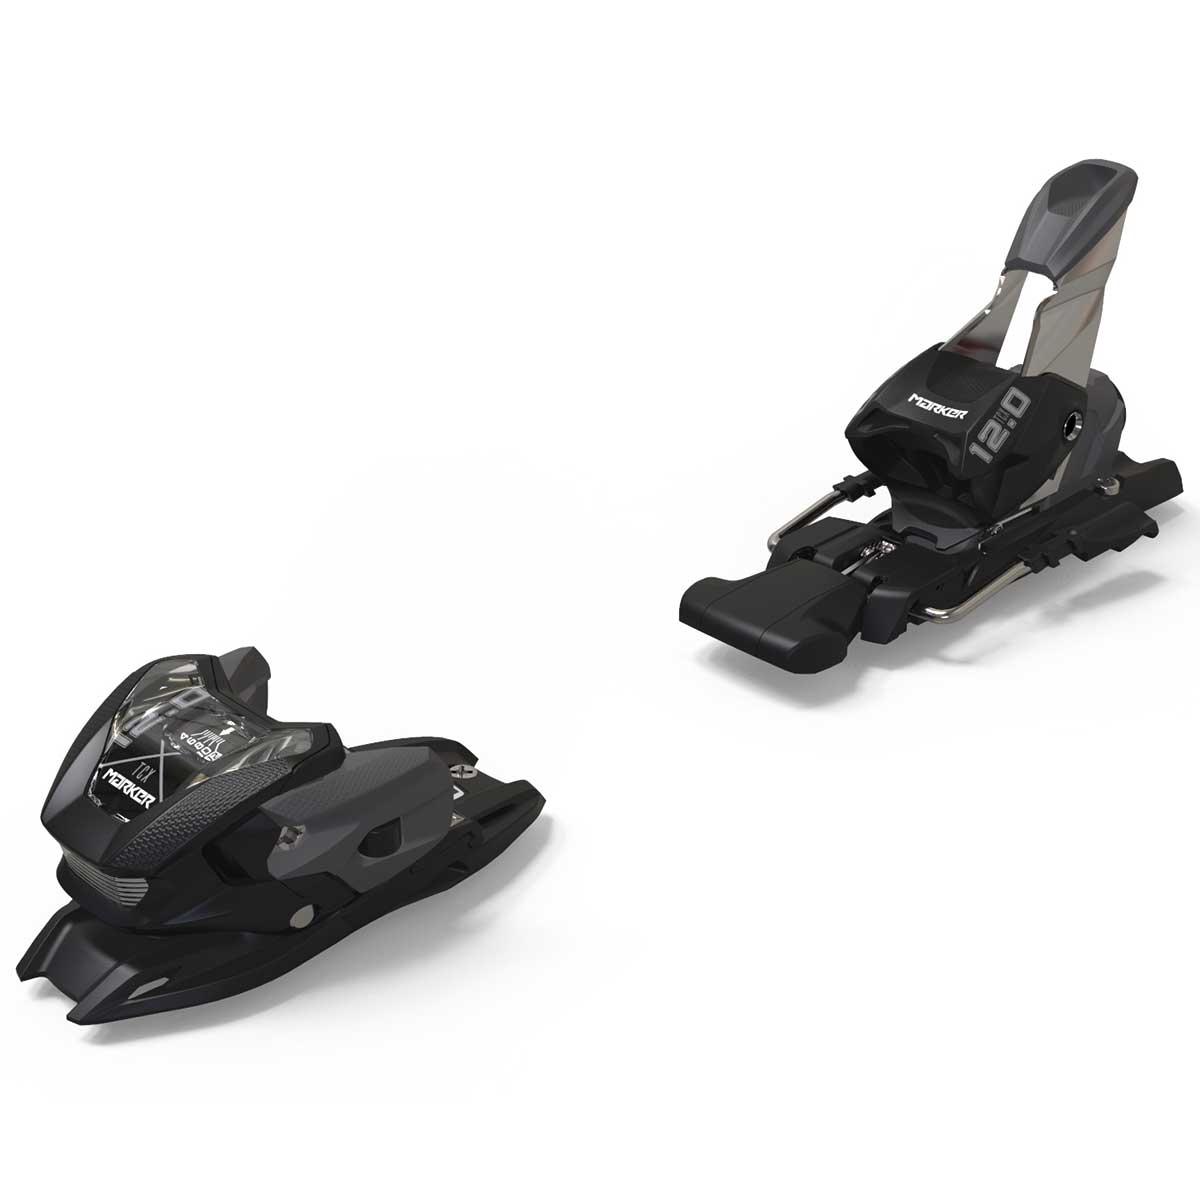 Marker 12.0 TPX ski binding in black anthracite